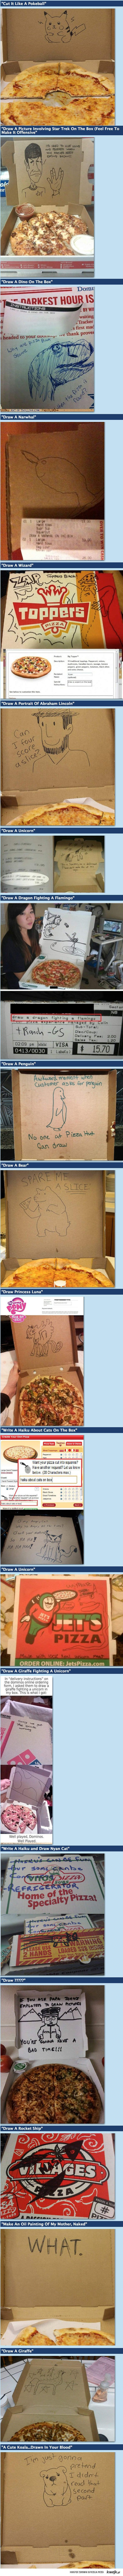 any special requests (ordering online) yesss draw me ____ on my pizza box :) omgggg how cool.